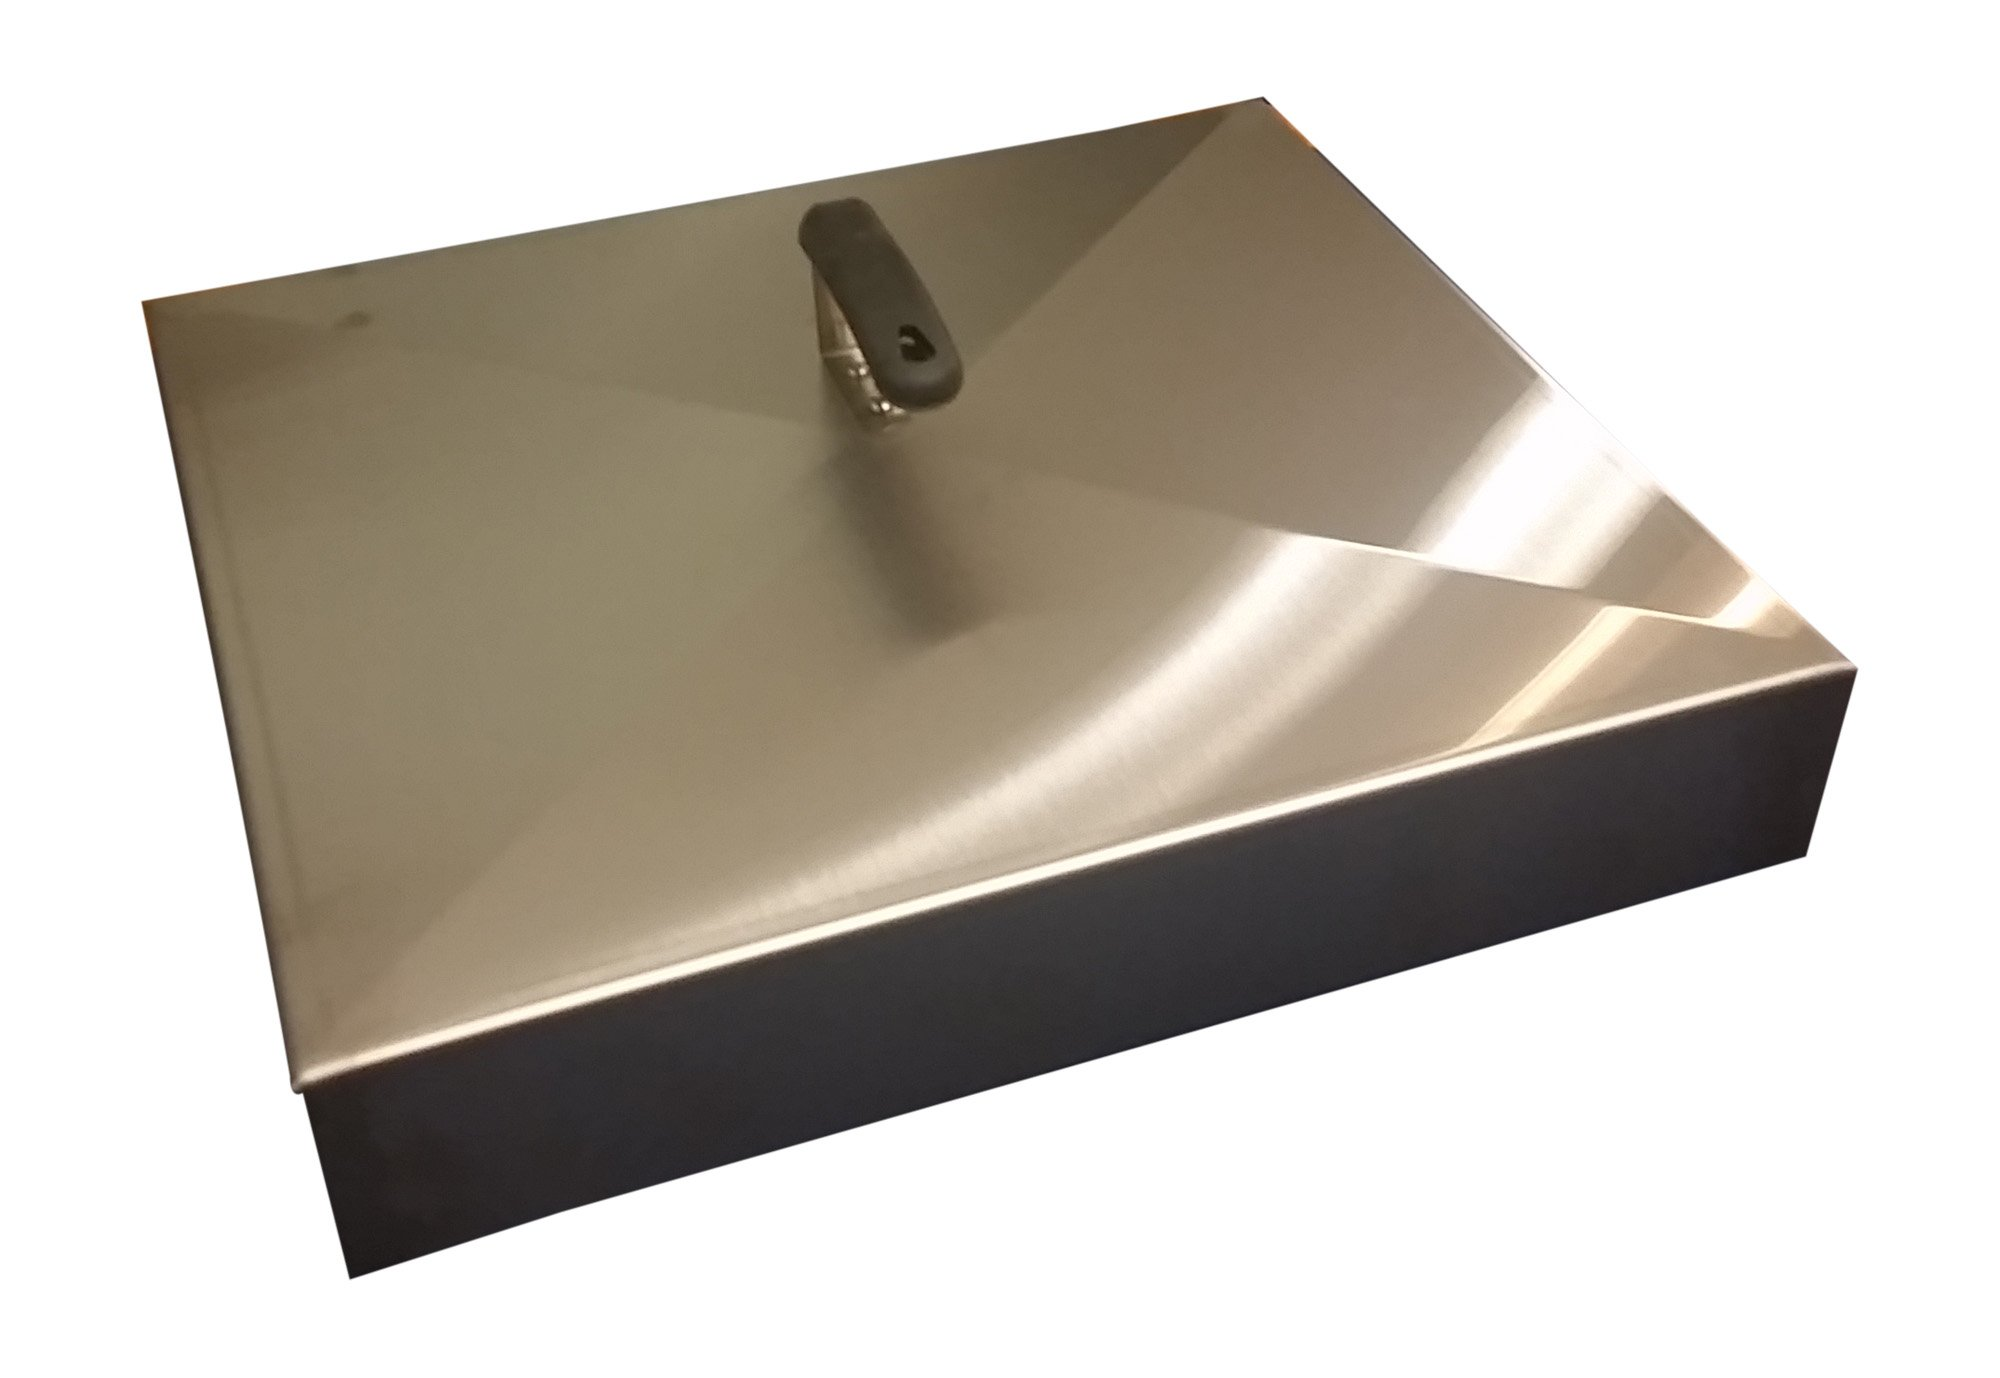 Backyard Life Gear Griddle Cover, Stainless Steel, for 17-inch Blackstone Griddle